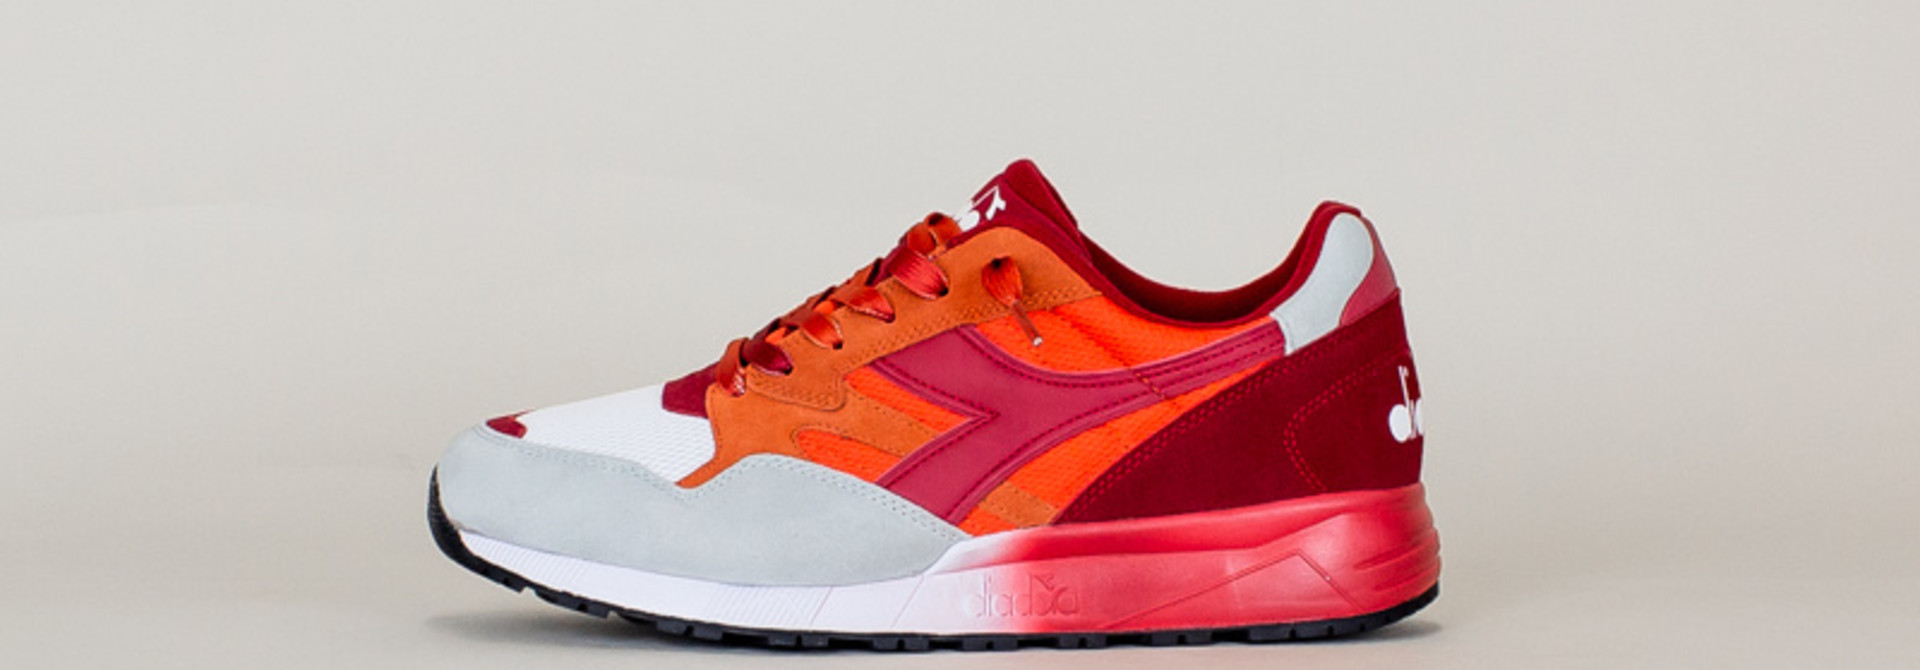 Diadora N902 Speckled - Carrot/Red